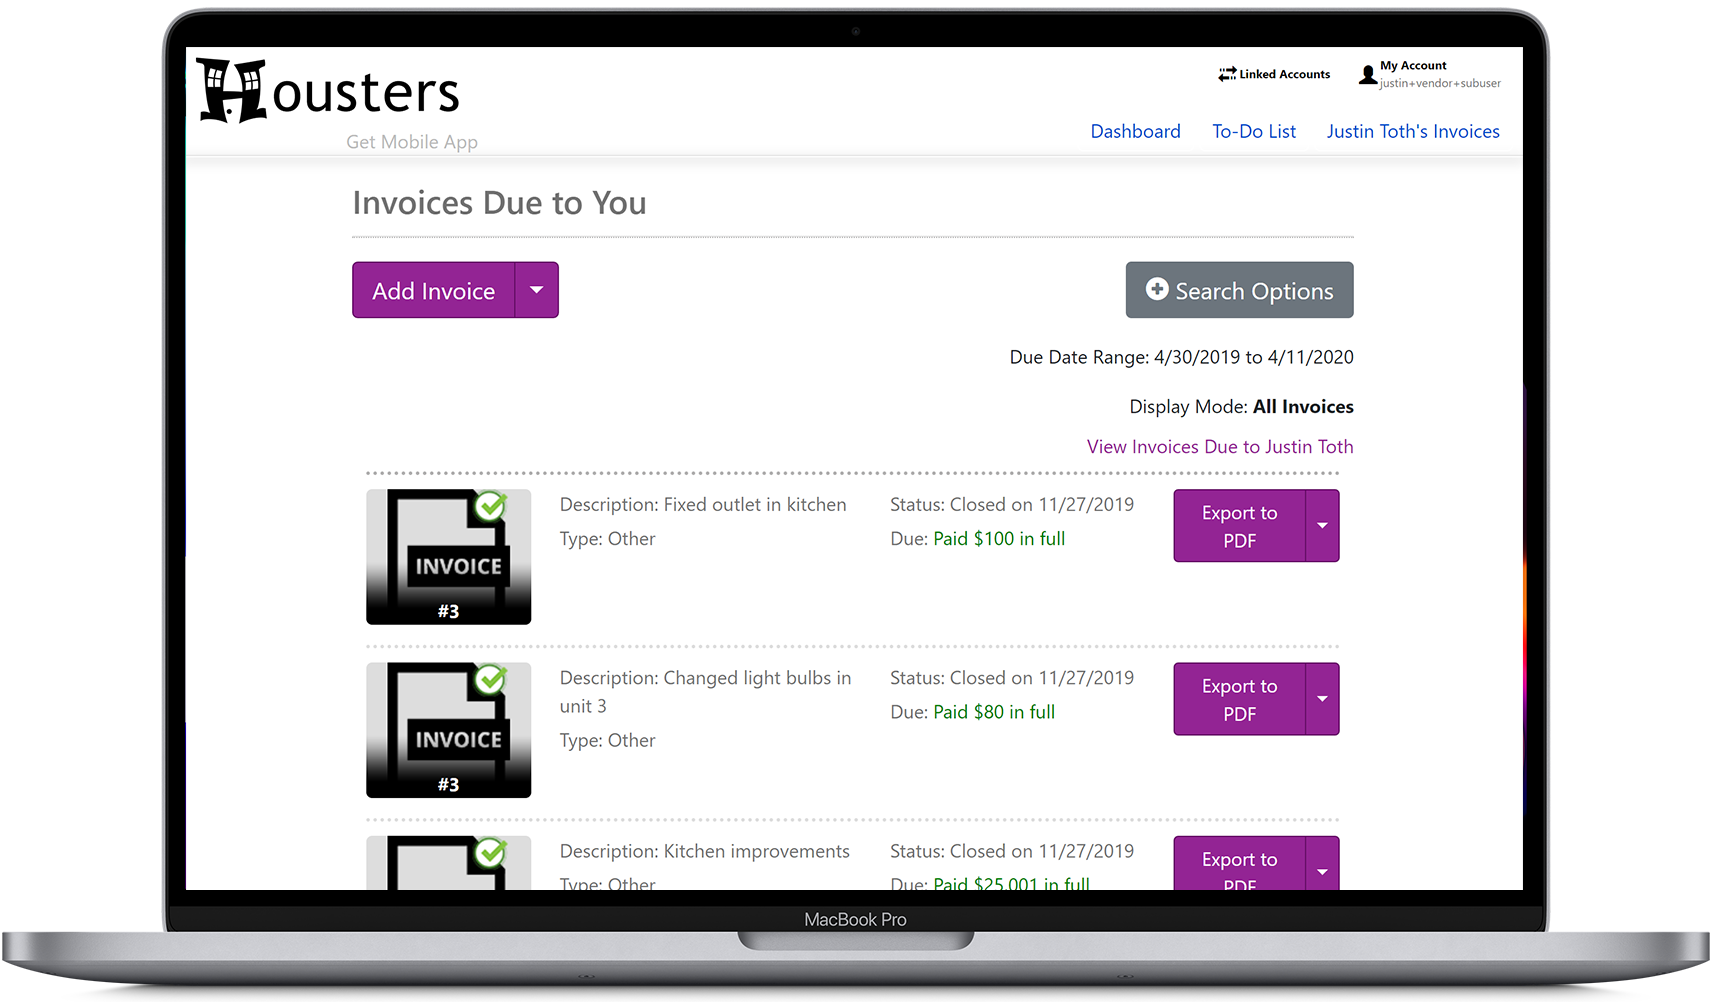 Contractors can create and send invoices to landlords and property managers